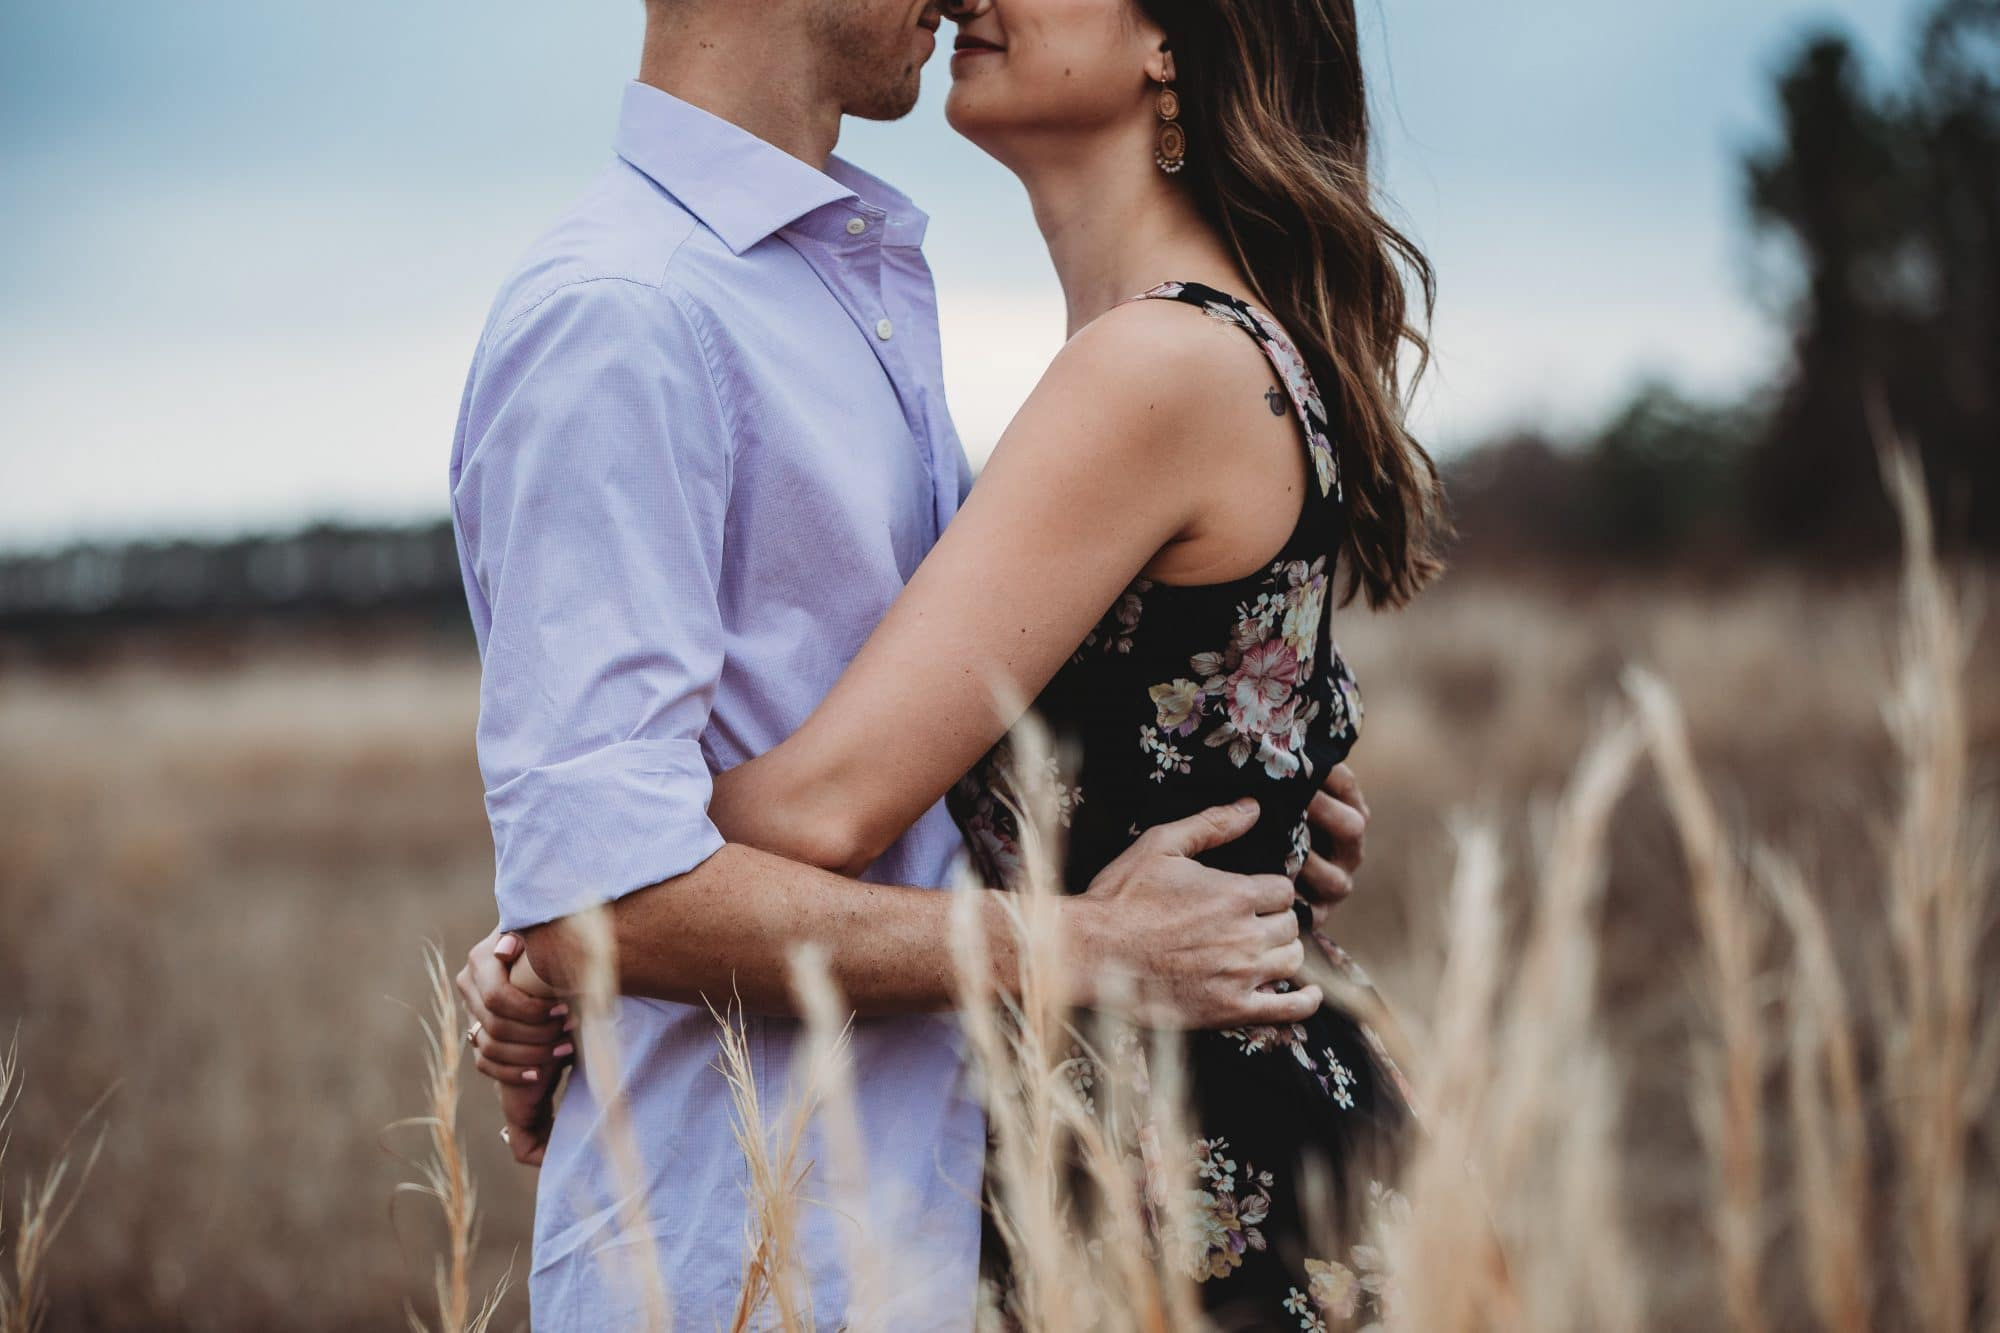 Rachel Doyle Photography - engaged couple holding each other in field